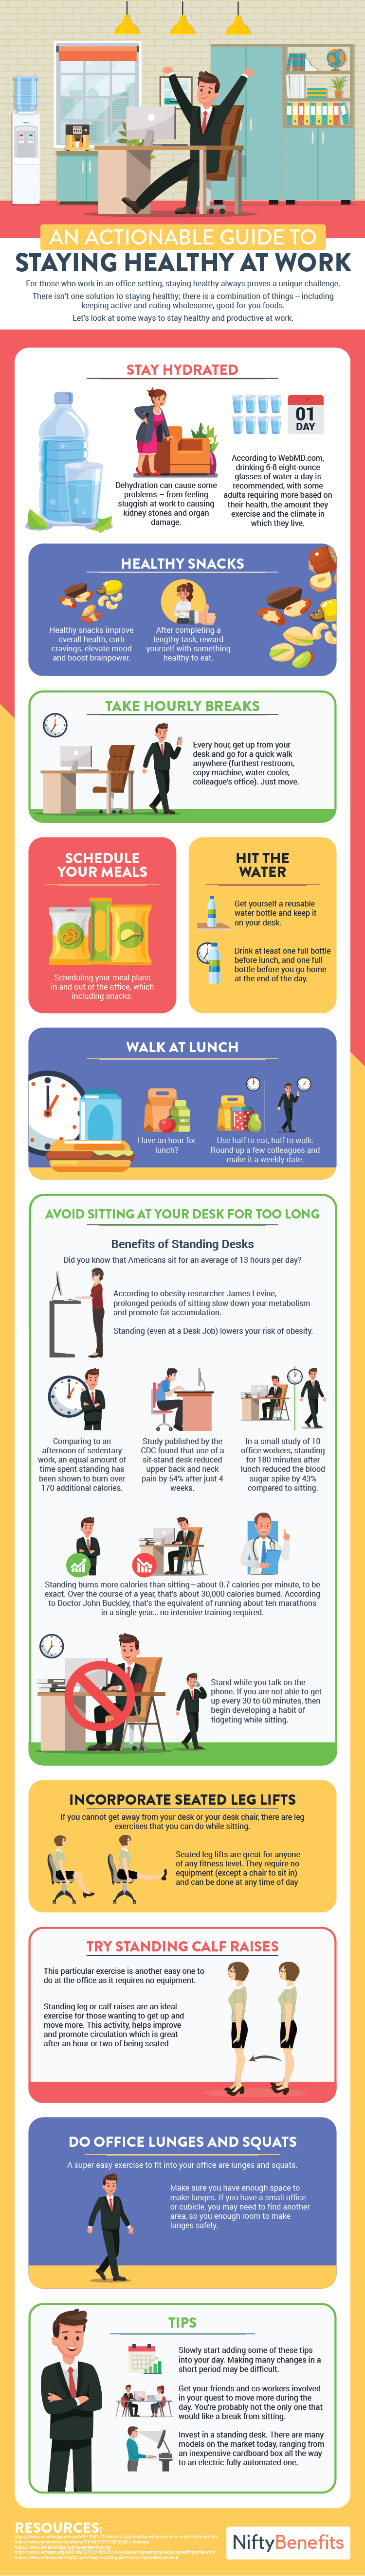 Stay Healthy, Stay Productive: An Actionable Guide - Infographic